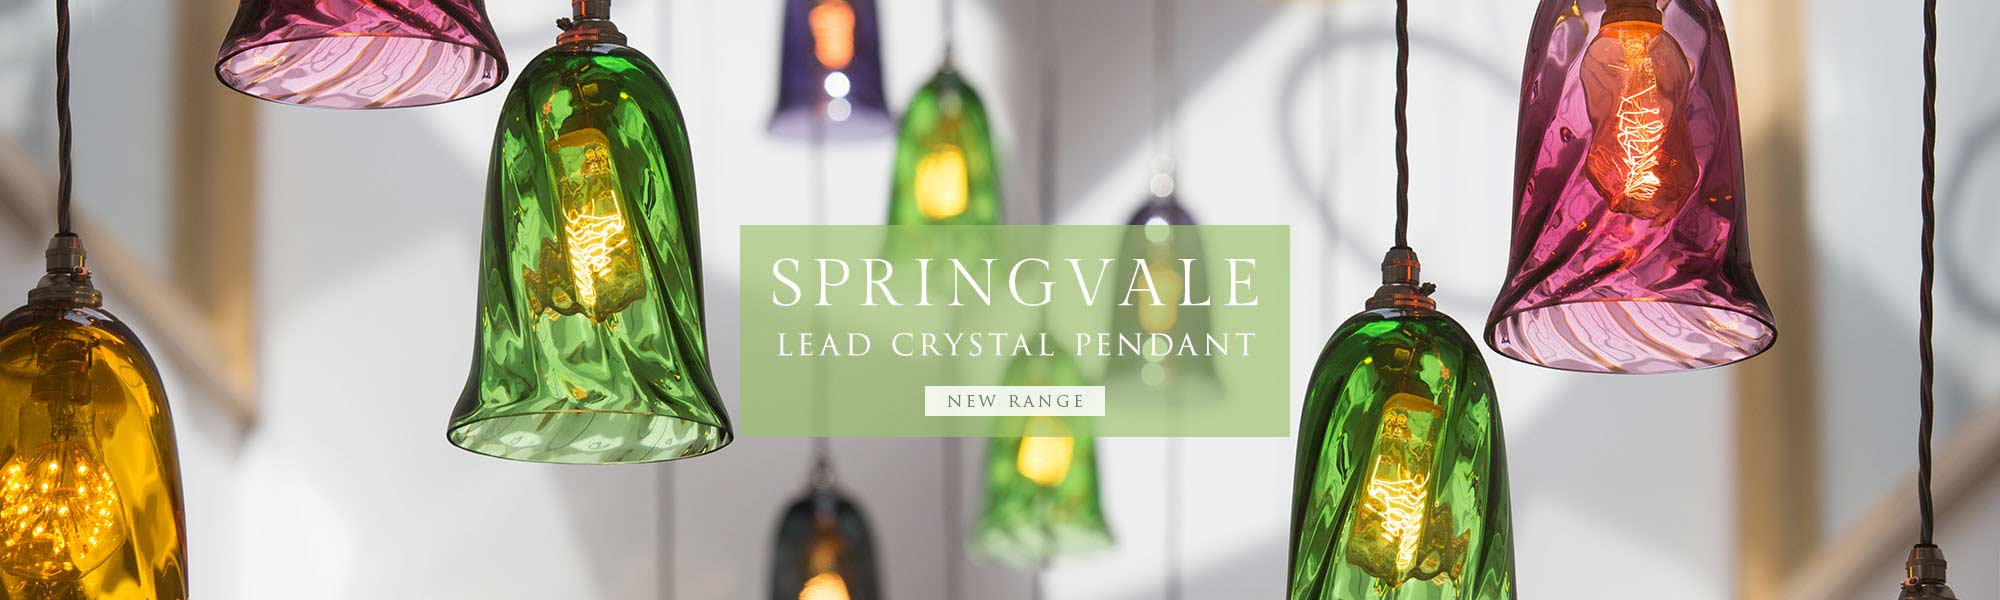 Springvale Lead Crystal Pendant Light from Nigel Tyas Ironwork